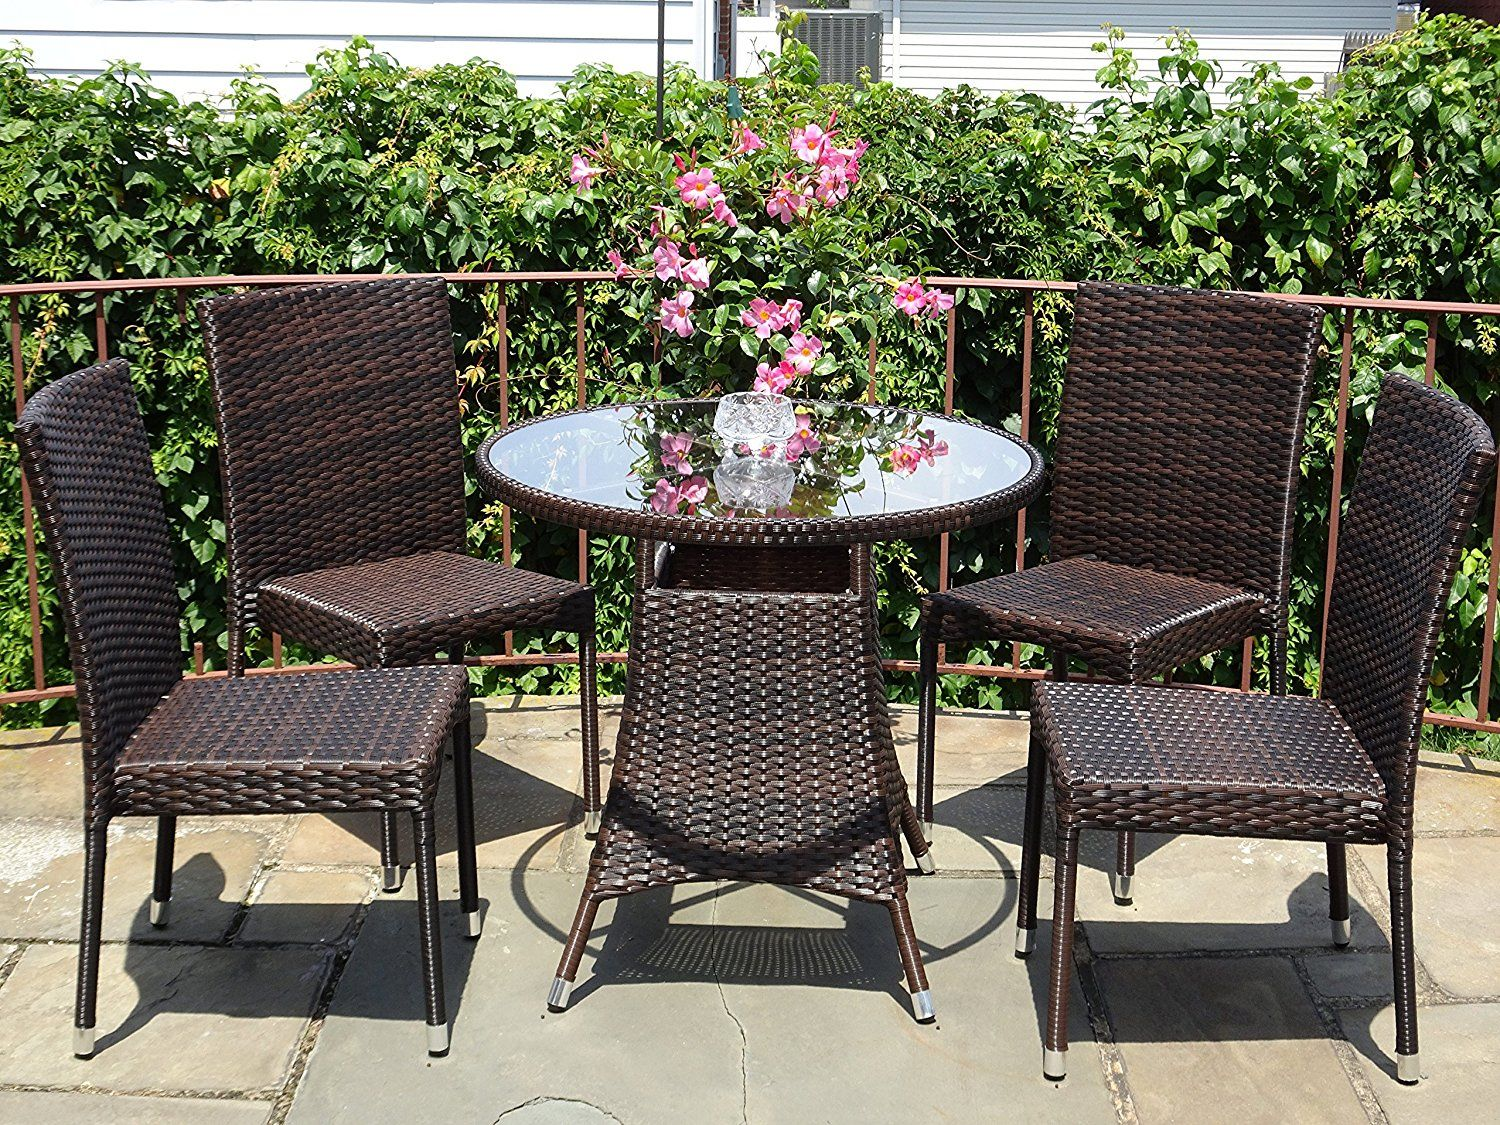 Furnitures 5 Pc Patio Resin Outdoor Wicker Dining Set Round